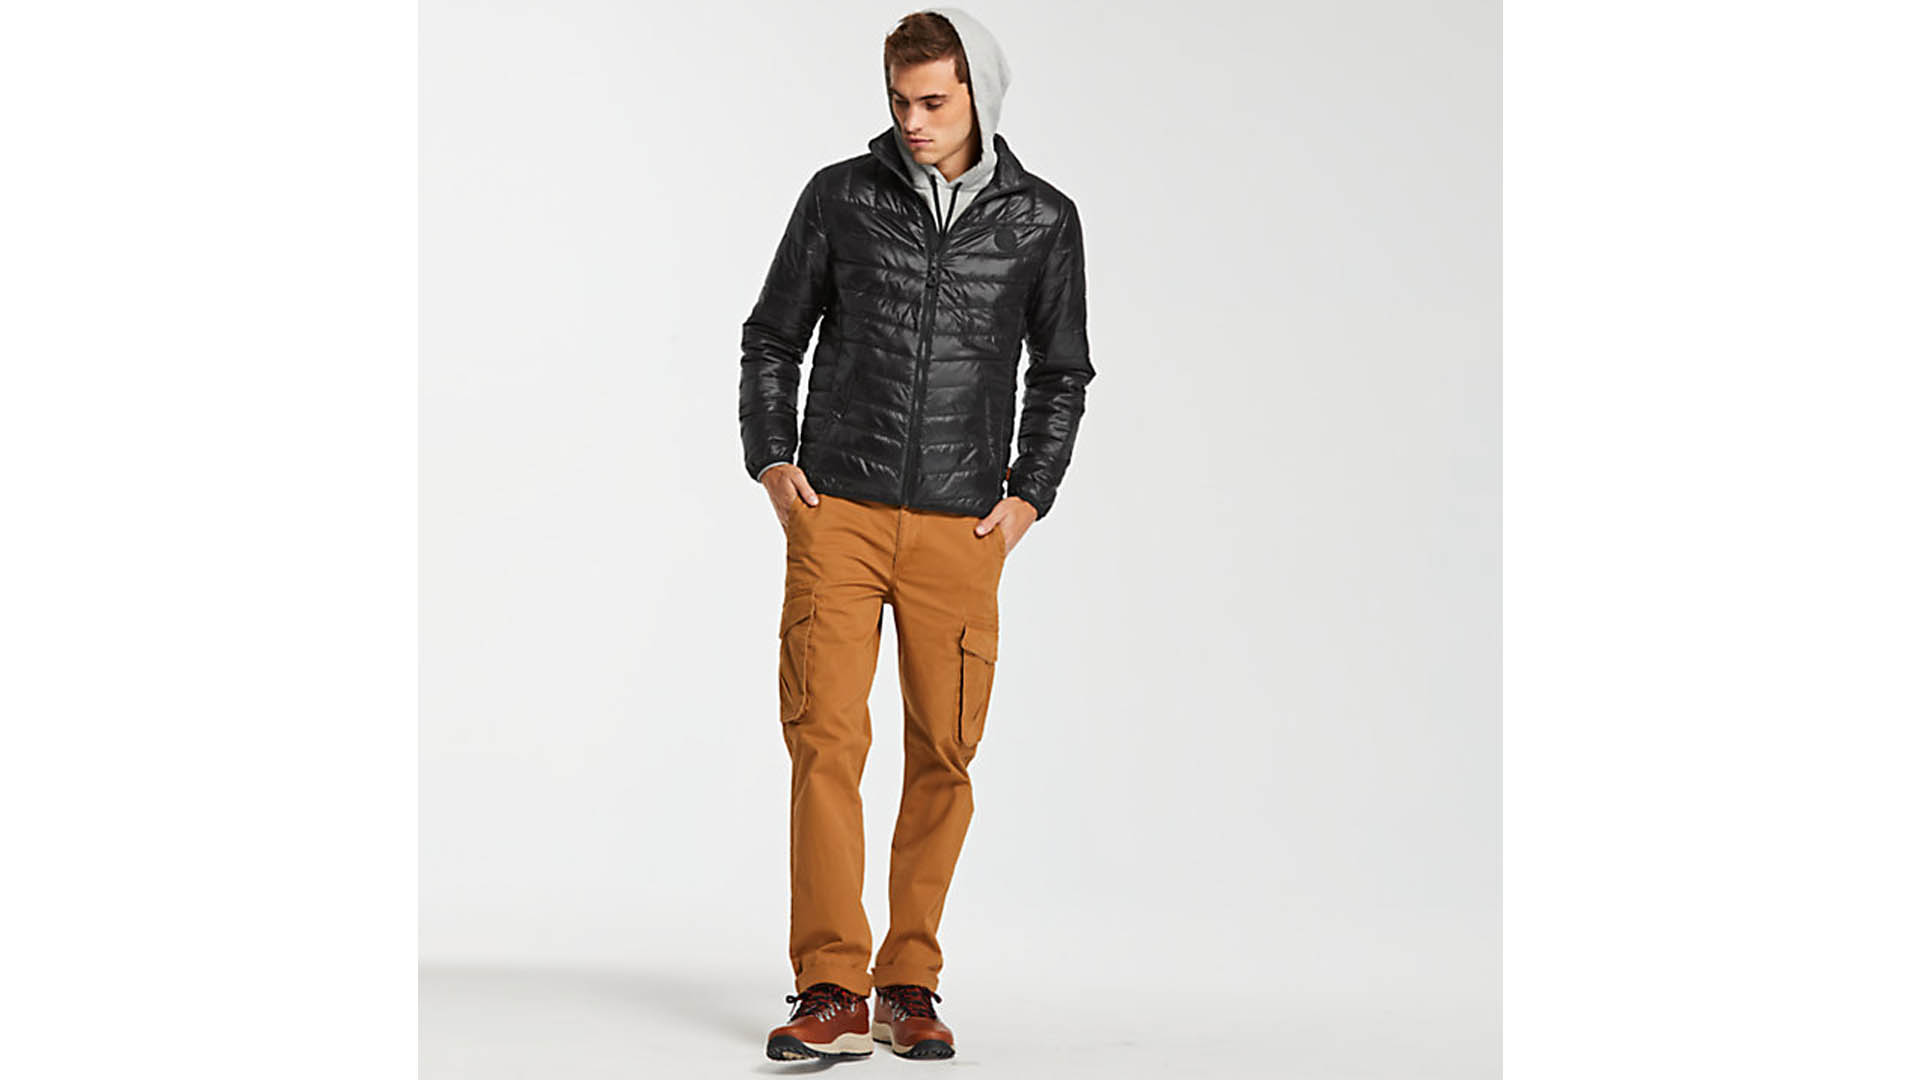 f4dfa3a5 Casual and stylish at the same time for a good price. The Skye Peak Thermal  Jacket follows the same set you get on this sale. Especially since you get  more ...